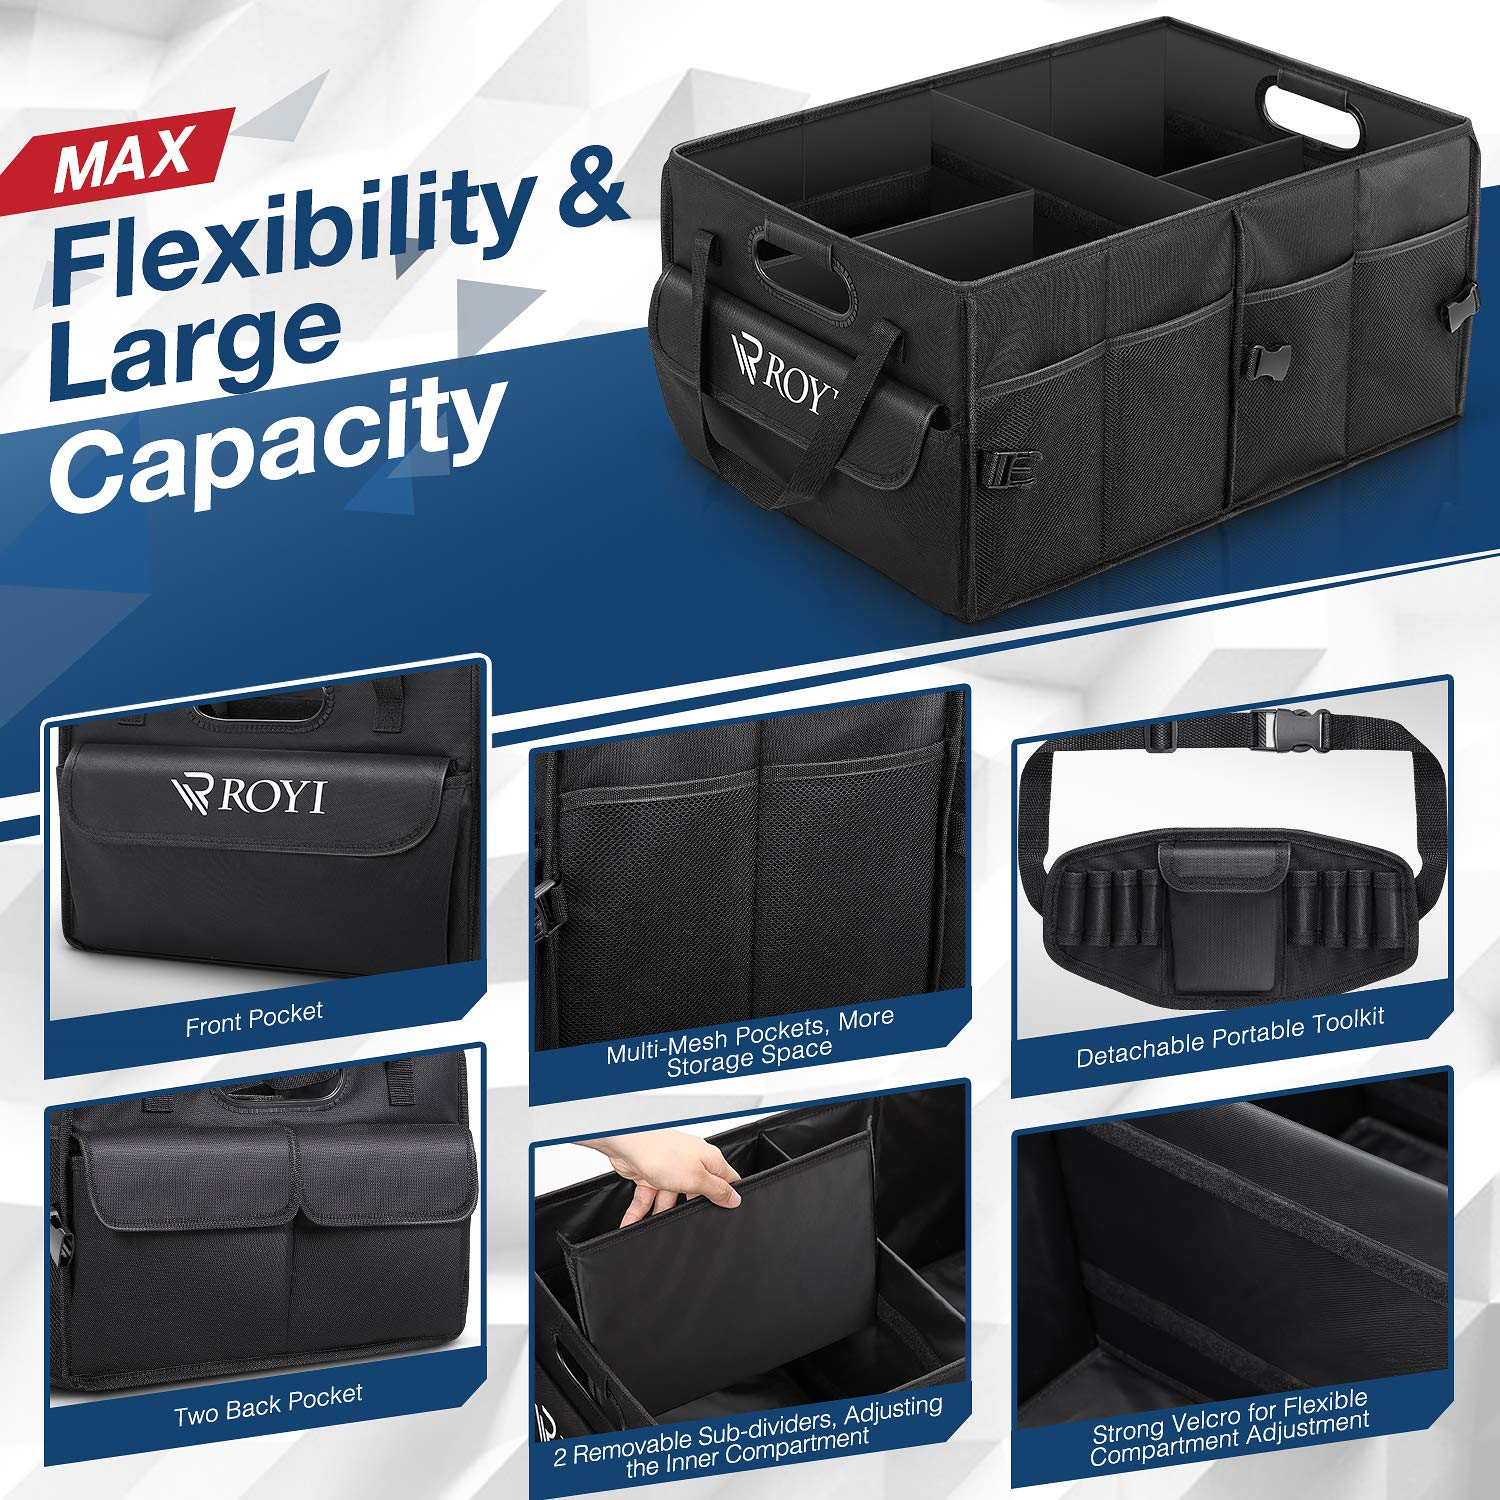 Upgraded Trunk Organizer for Car Heavy Duty Collapsible Portable Truck Bed Organizer with 4 Wider & Longer Non-Slip Bottom Strips to Prevent Sliding Bonus 1 Portable Toolkit by tomser (Image #6)